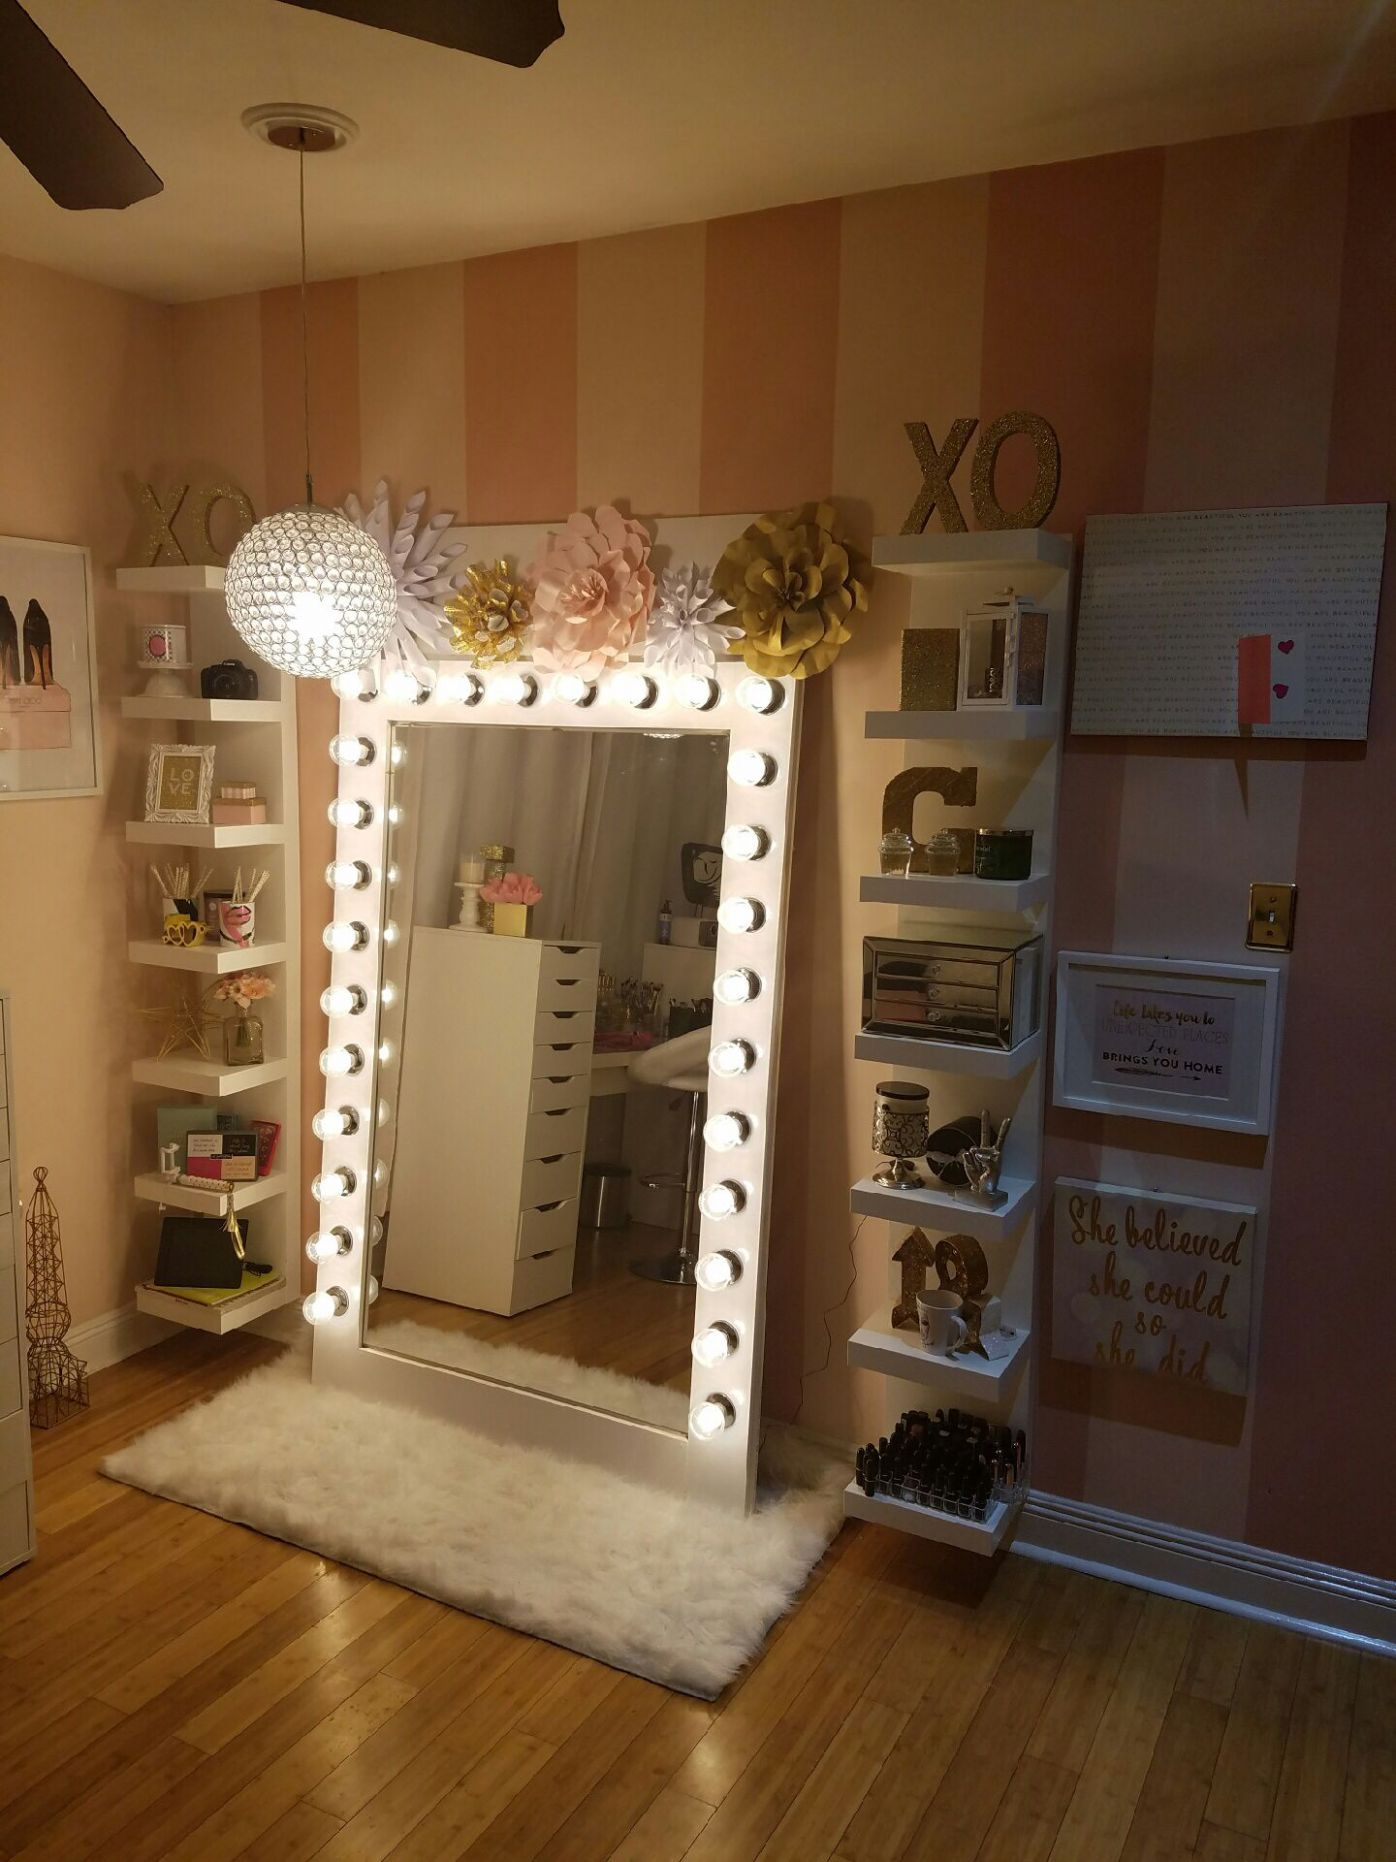 Makeup storage with diy style Hollywood glam light | Glam room ...